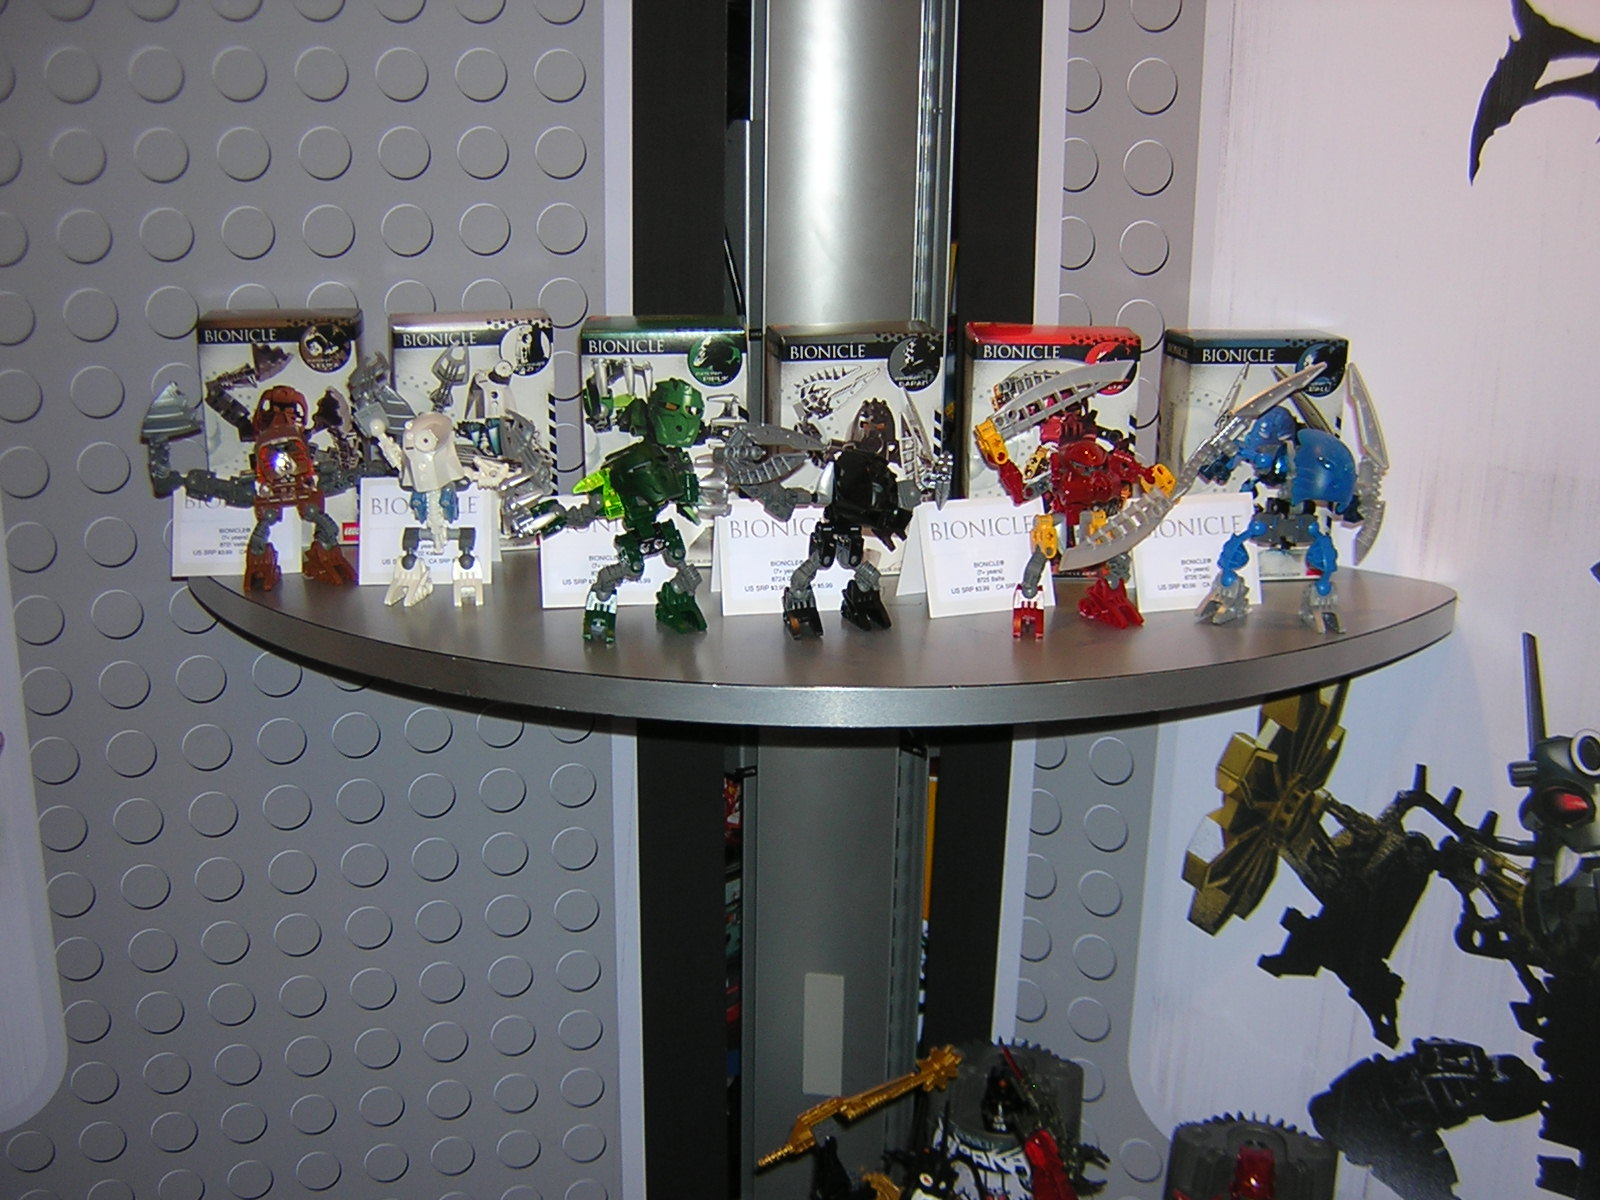 06_nyc_toy_fair_03.jpg